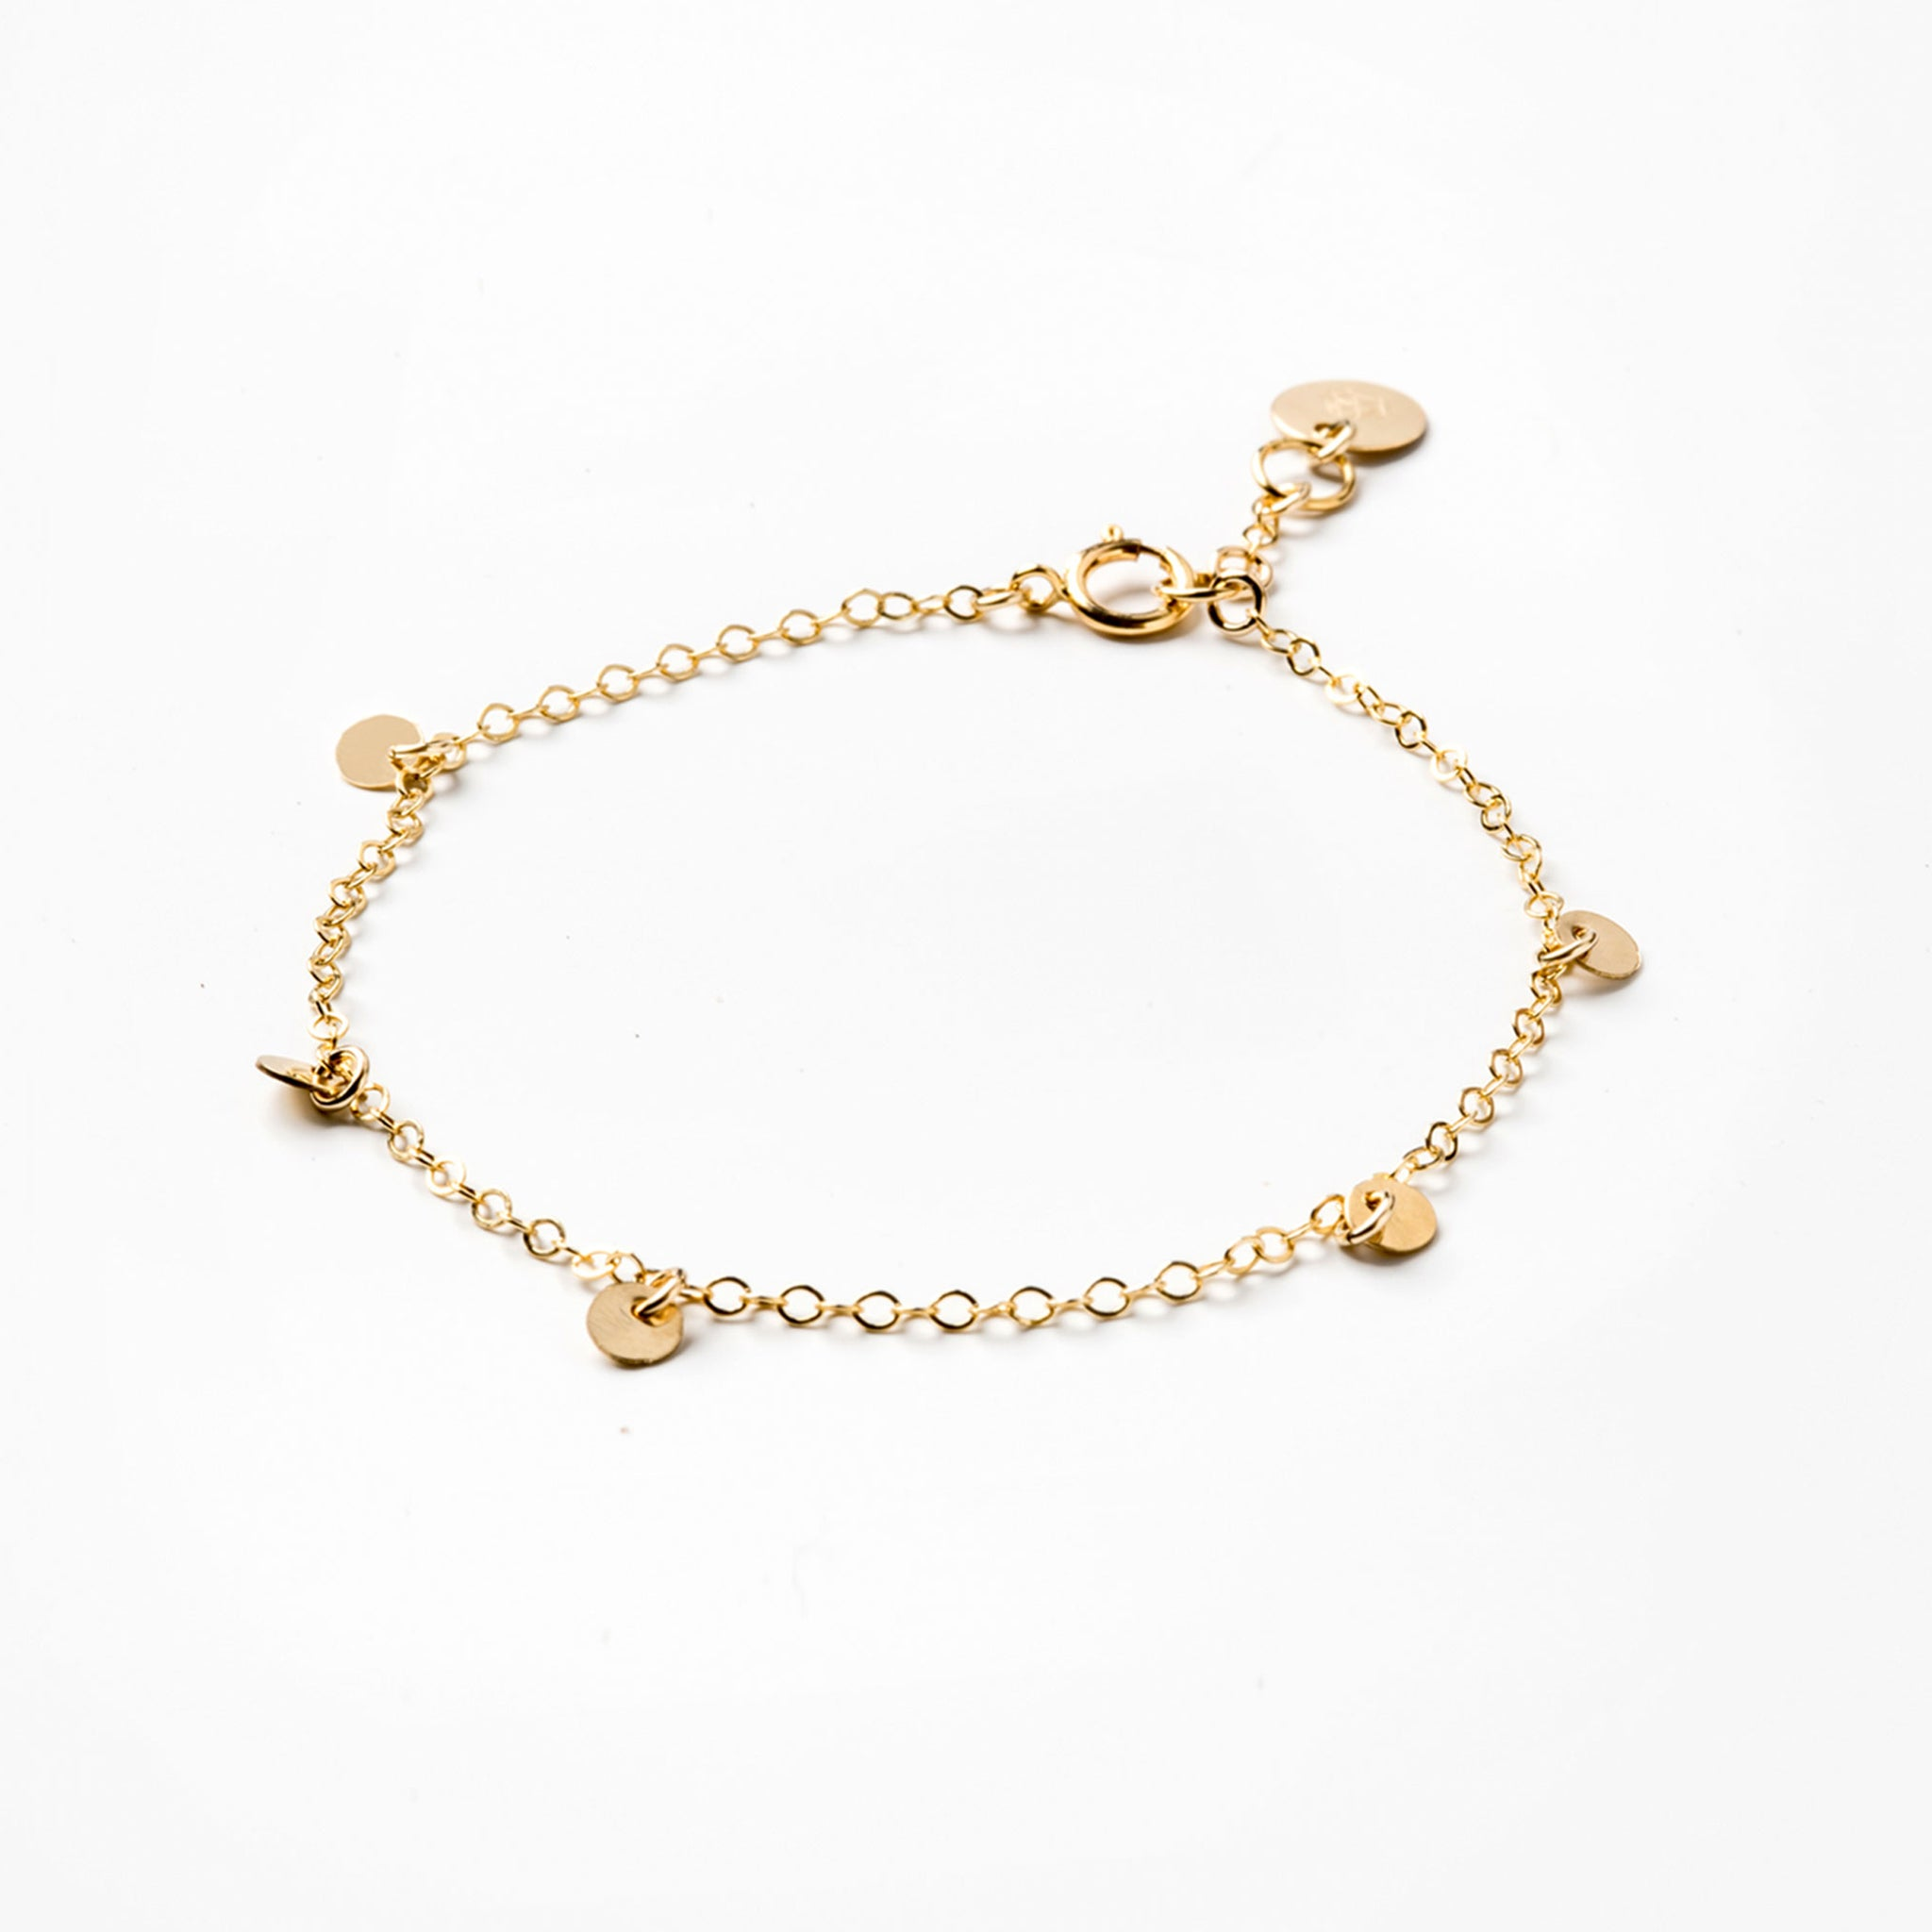 Wanderlust Life gold chain bracelet with adjustable gold chain. Wanderlust Life handmade jewellery in the UK.